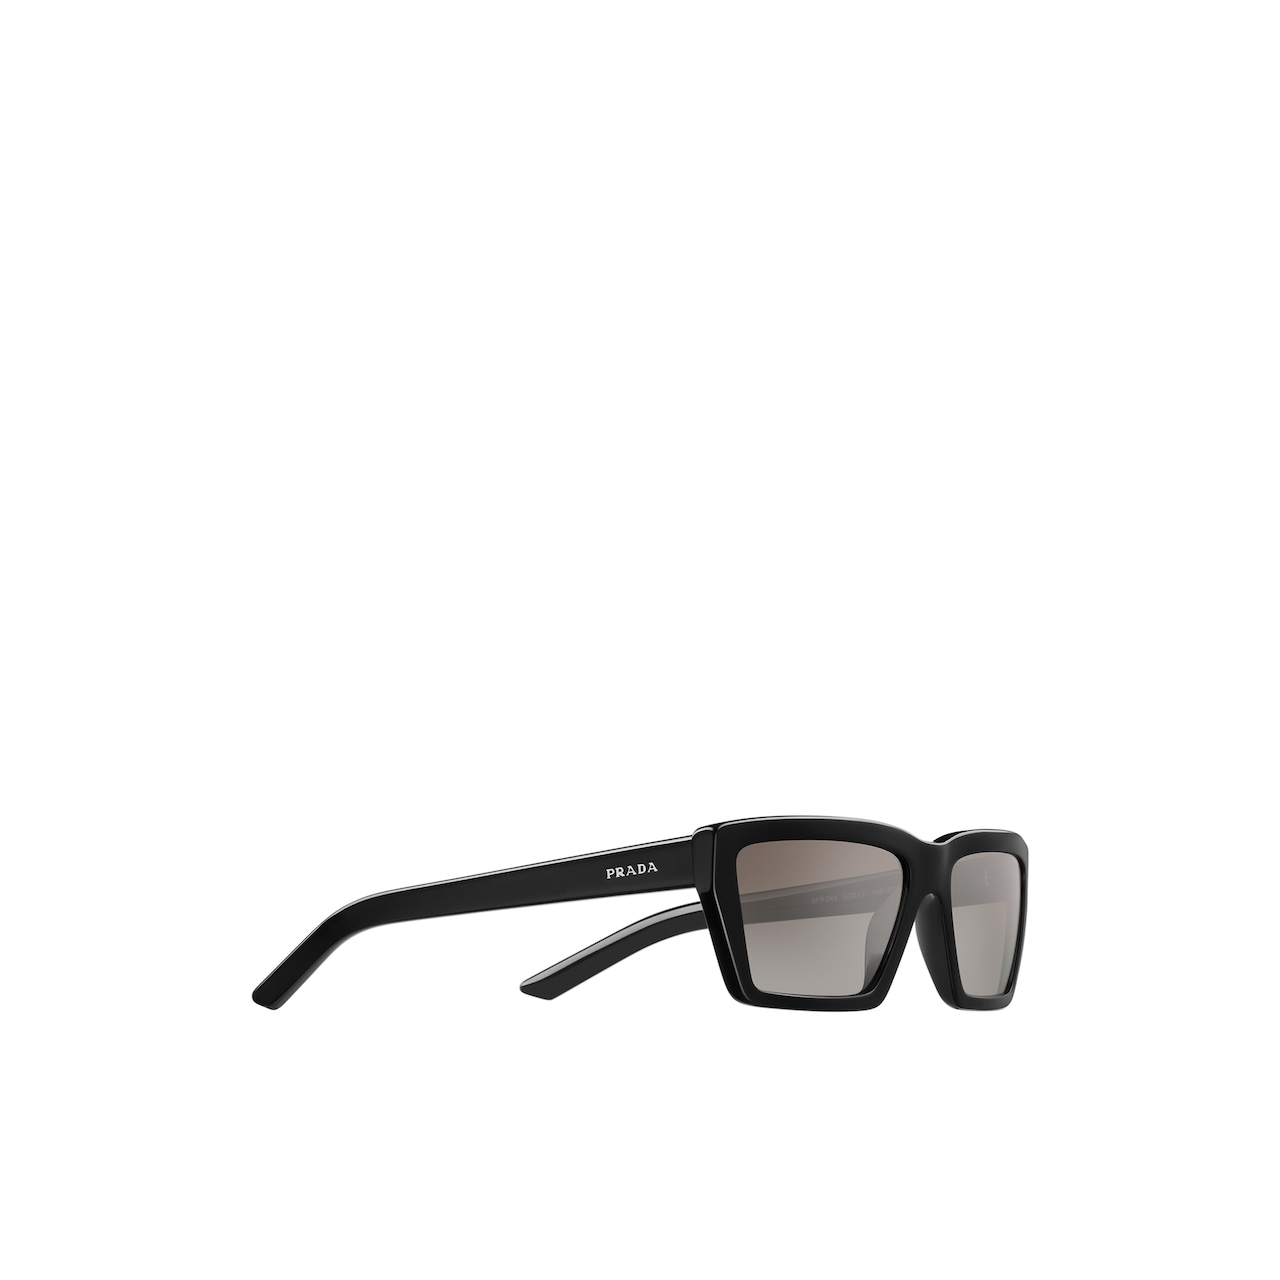 Prada Disguise sunglasses